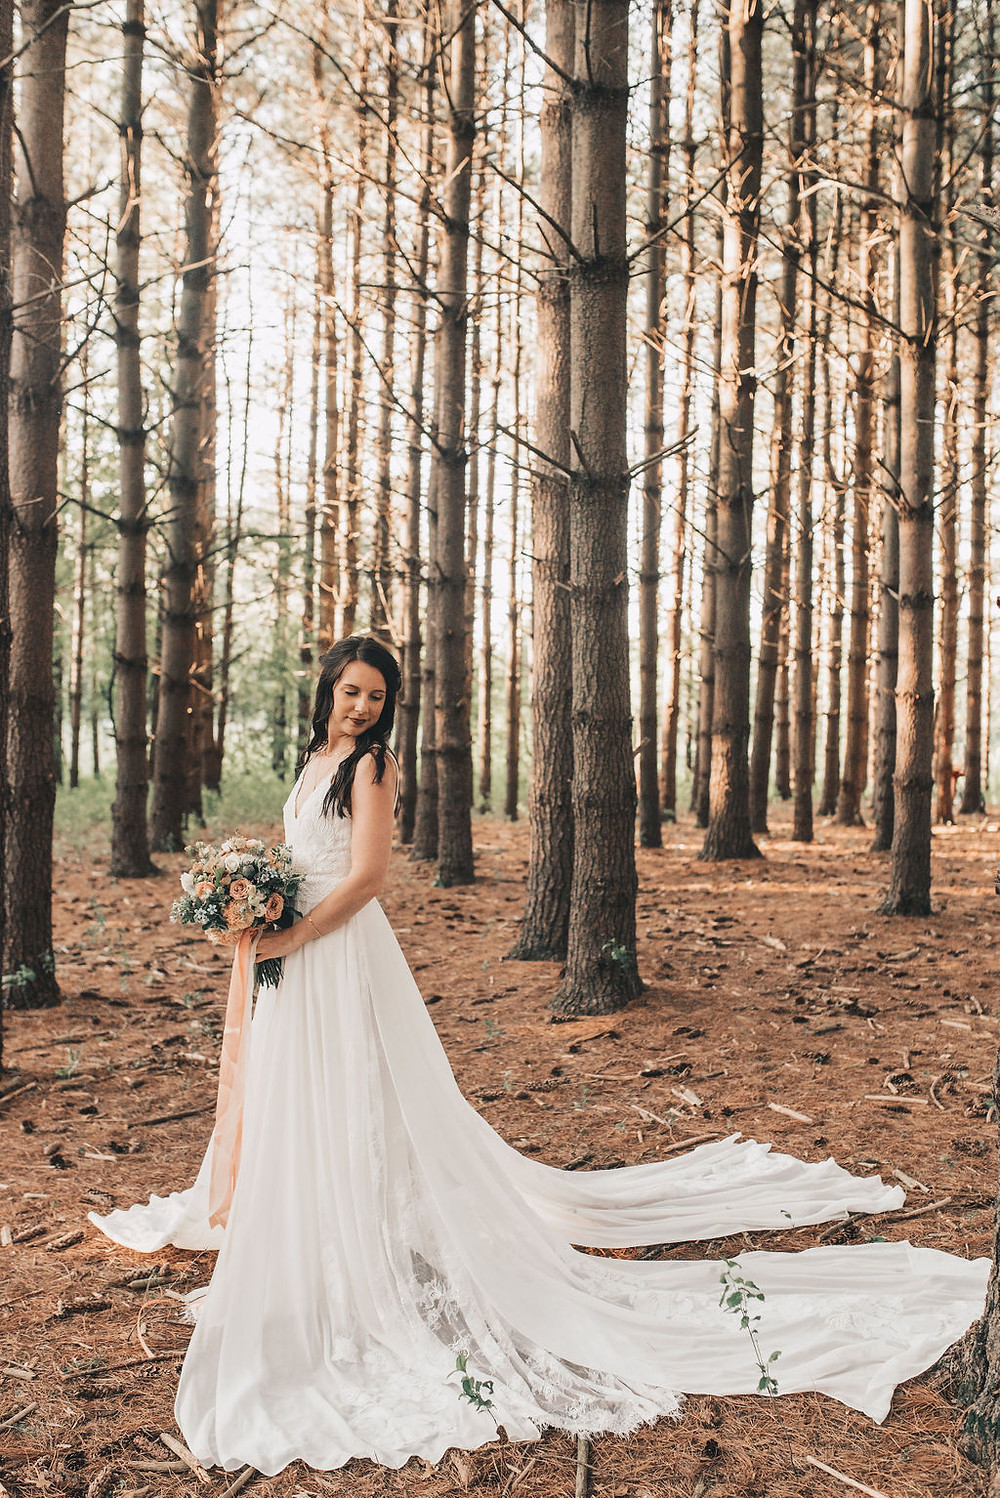 The bridal gown was simple, but stunning; white, simple lace, and split train